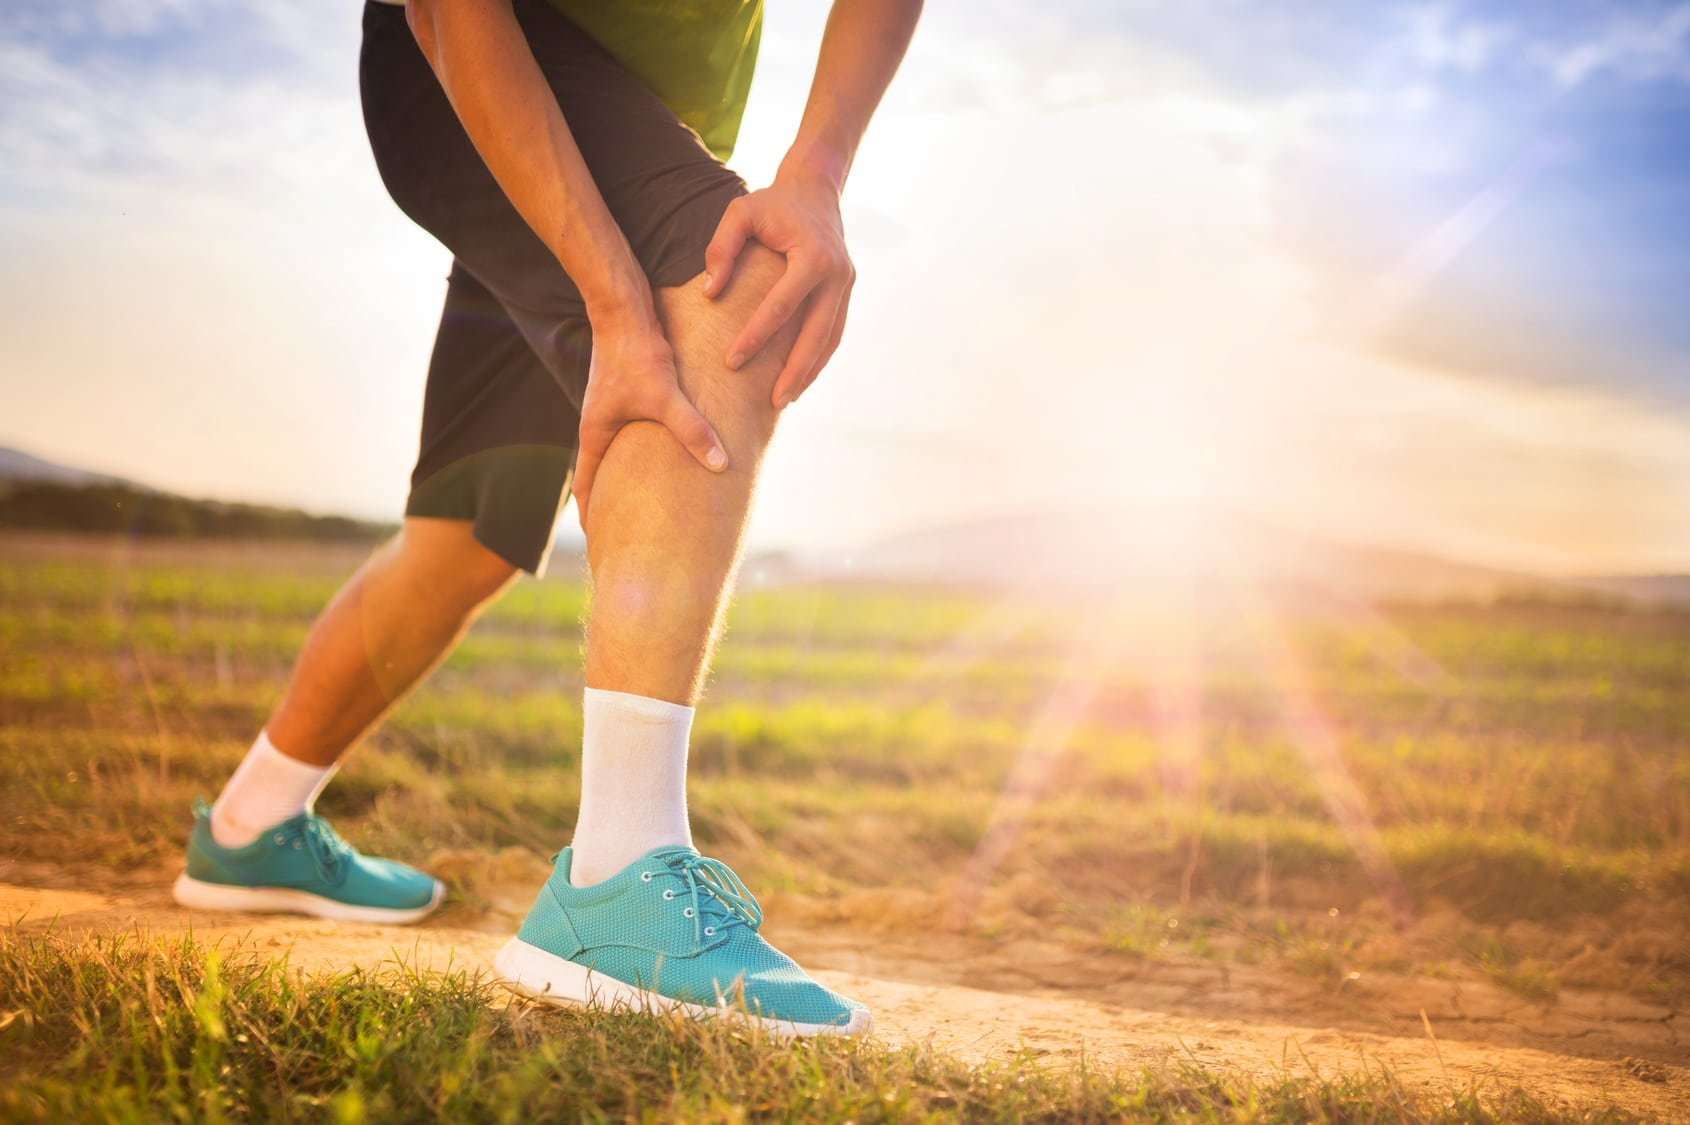 Knee Pain When Running The 7 Most Common Knee Injuries